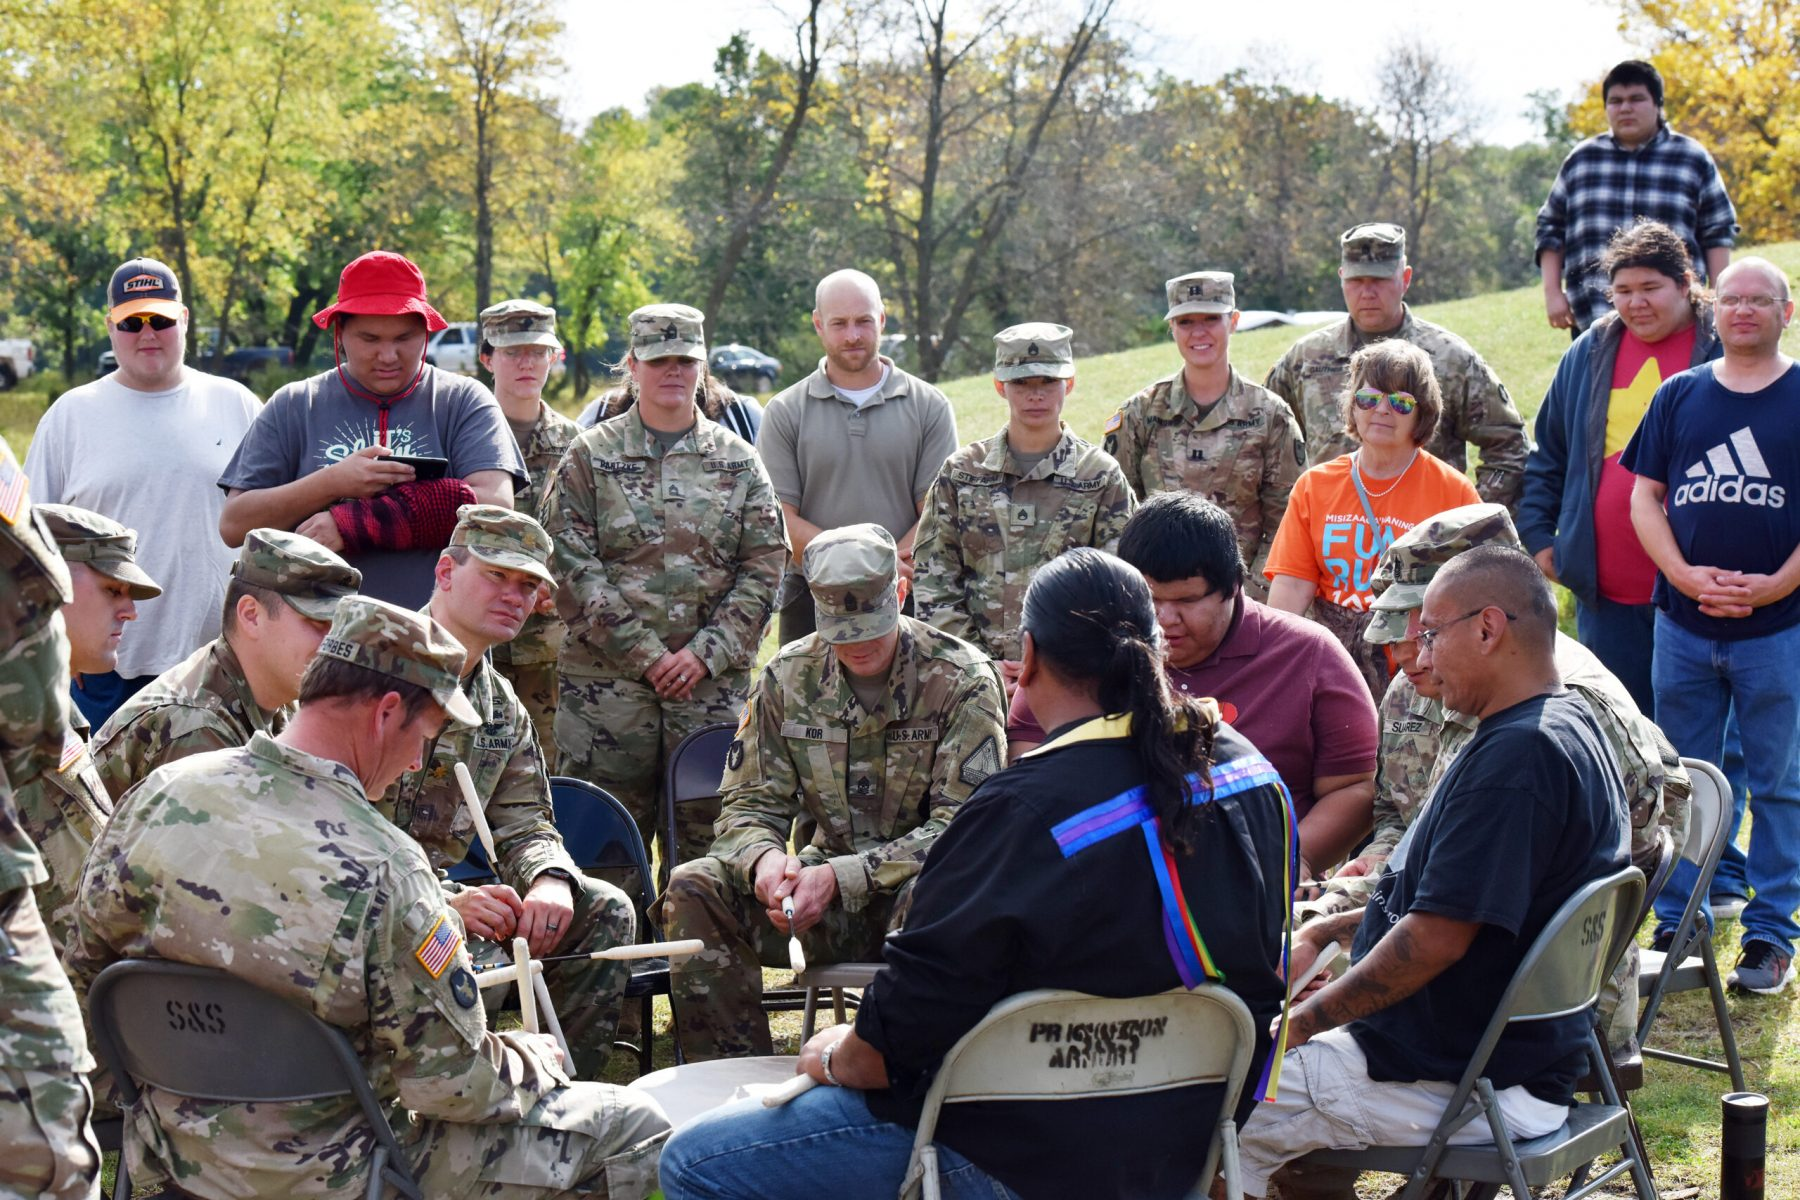 Members of the Minnesota National Guard welcomed students form the Bug-O-Nay-Ge-Shig School, Onamia Public Schools and Nay Ah Shing Schools onto Camp Ripley Sept. 20, 2019 to share in a cultural exchange while participating in the harvesting of sage, planting of natural prairie plants and to sharing in information about each other.